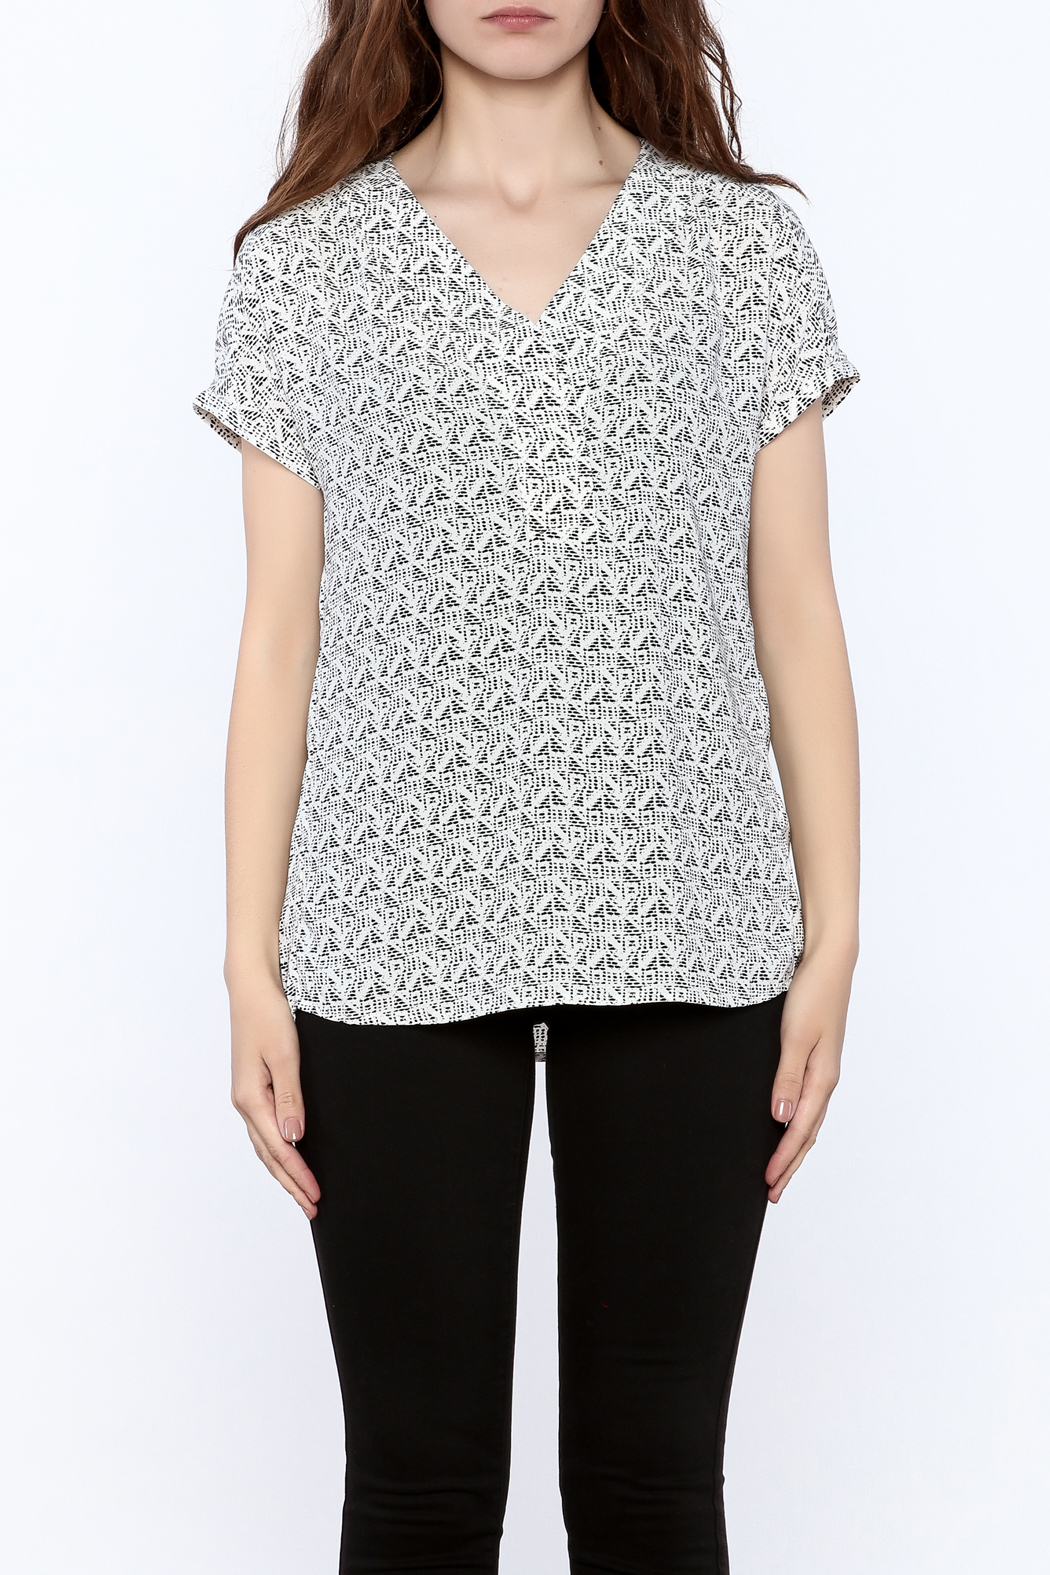 Zoa Grey Printed Boxy Top - Side Cropped Image